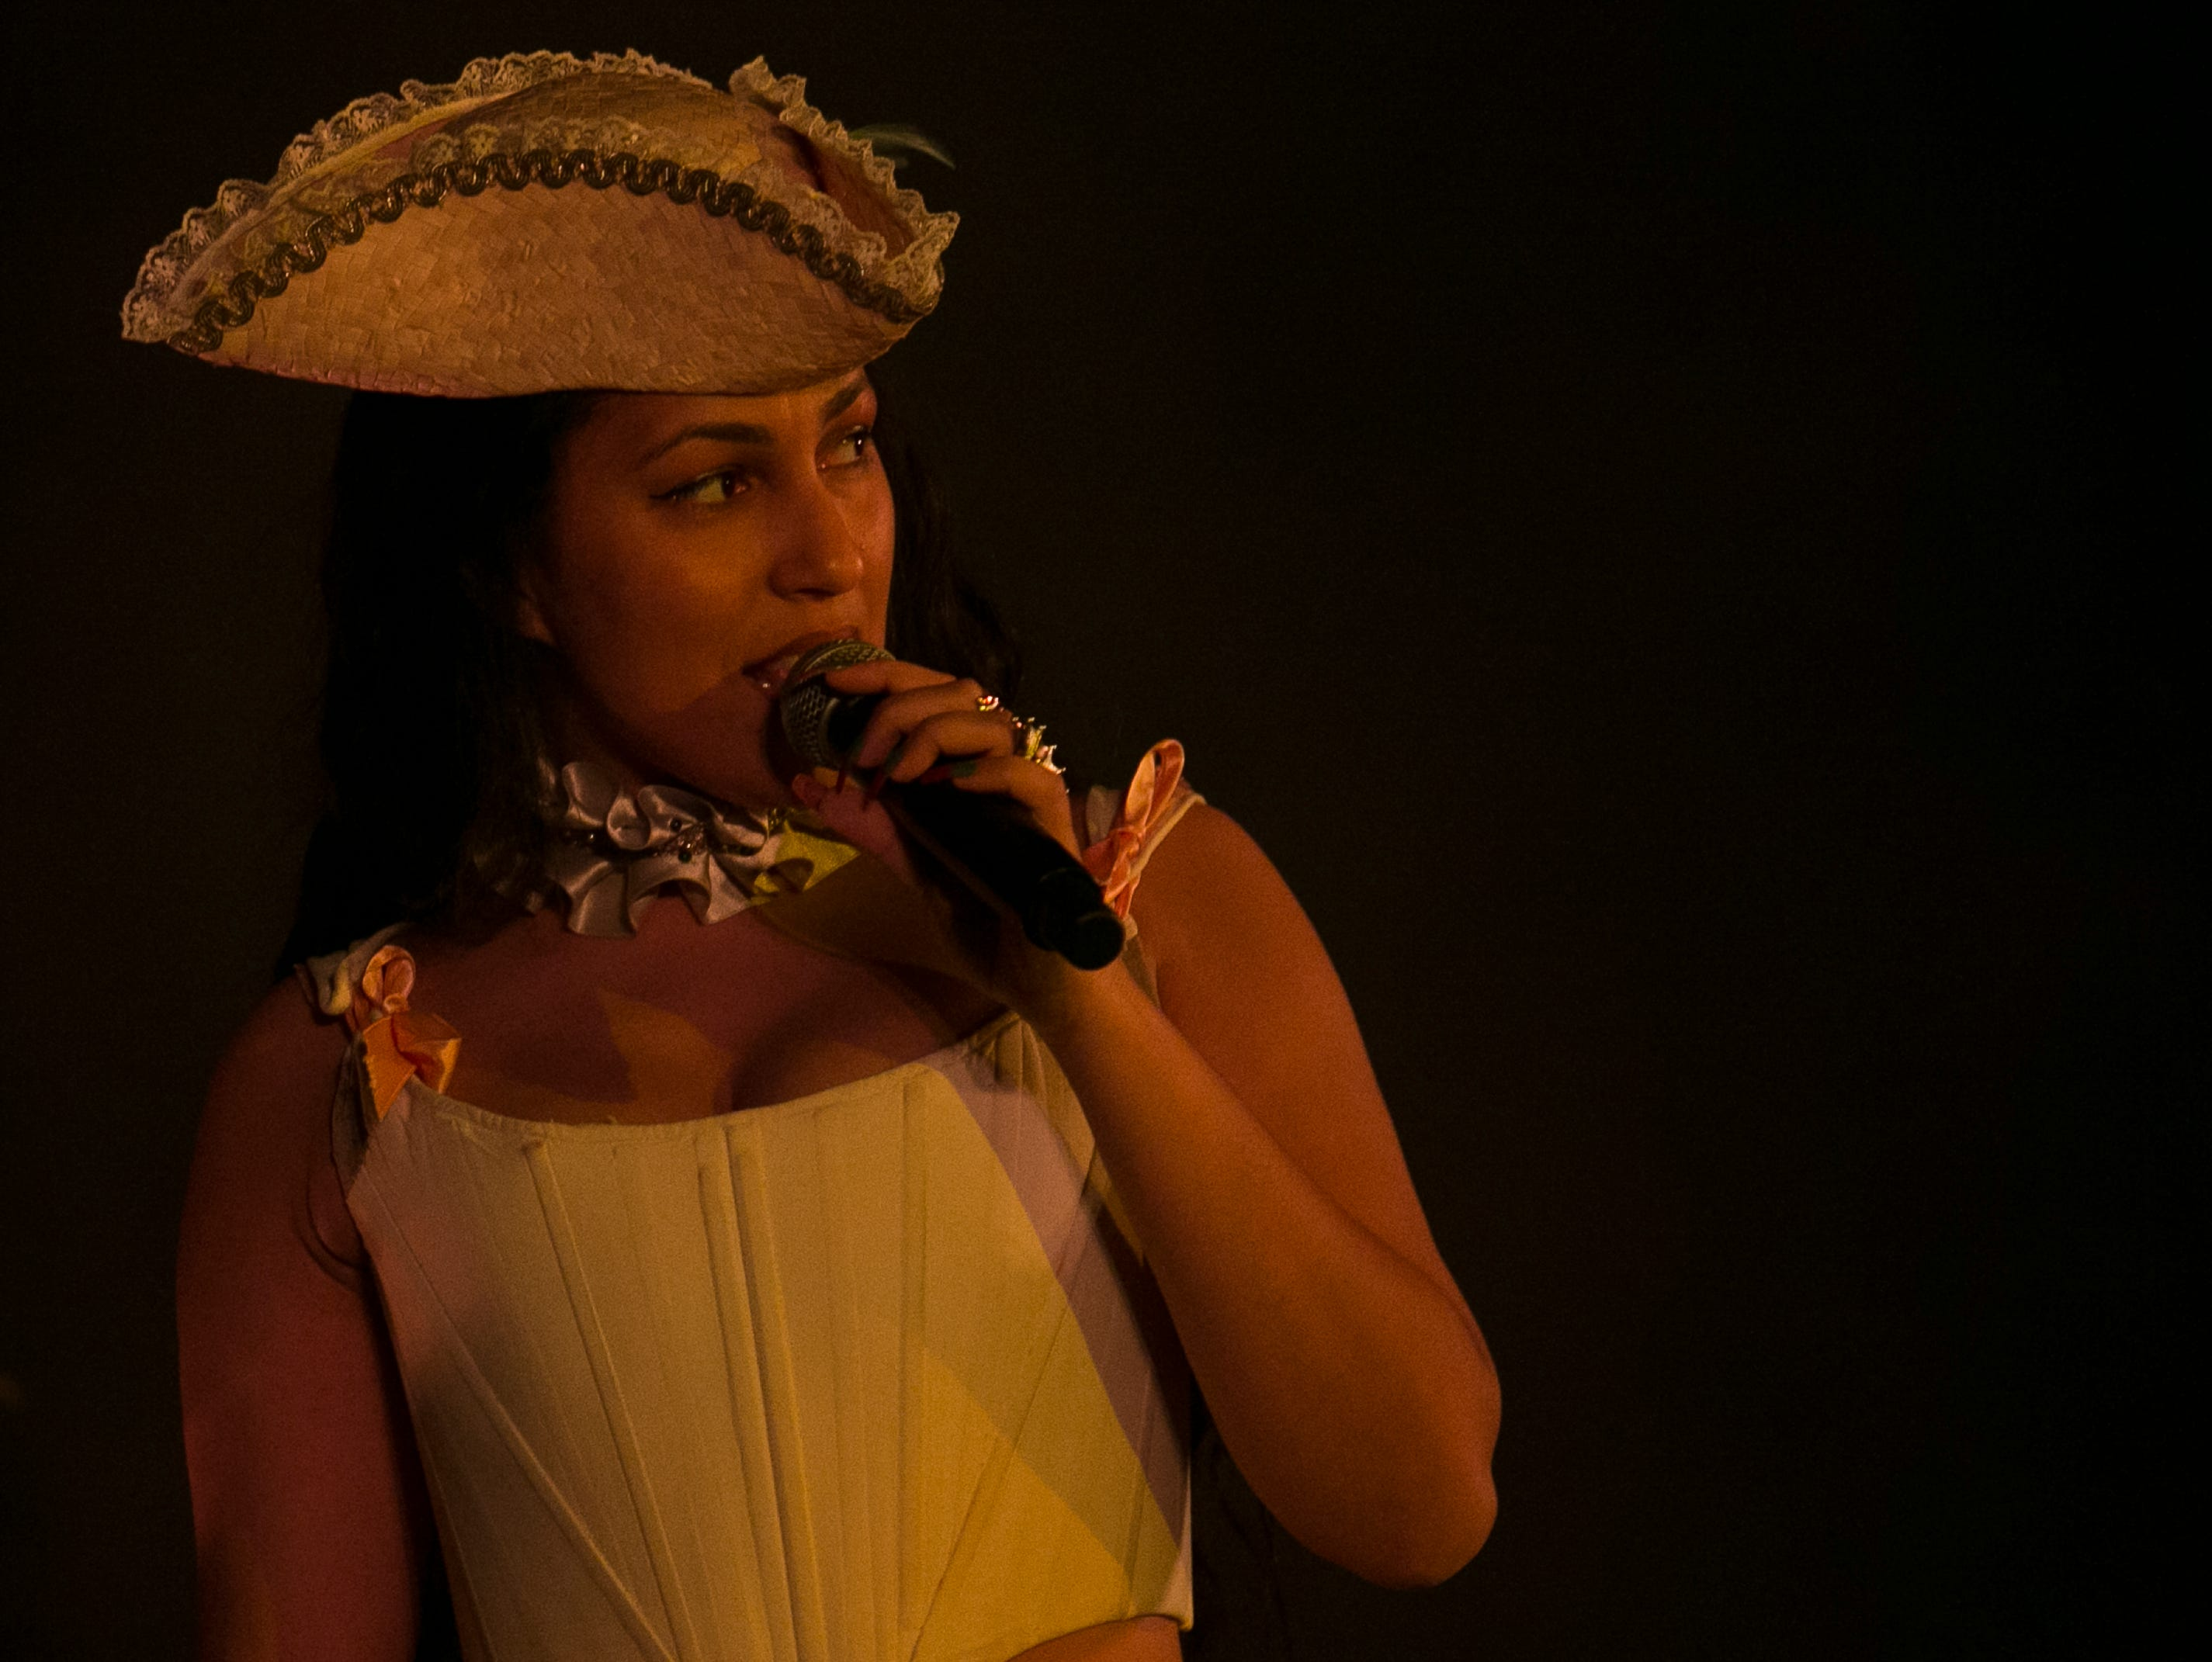 Lafawndah performs at the 2019 FORM Arcosanti music festival near Camp Verde, Arizona, on May 12, 2019.